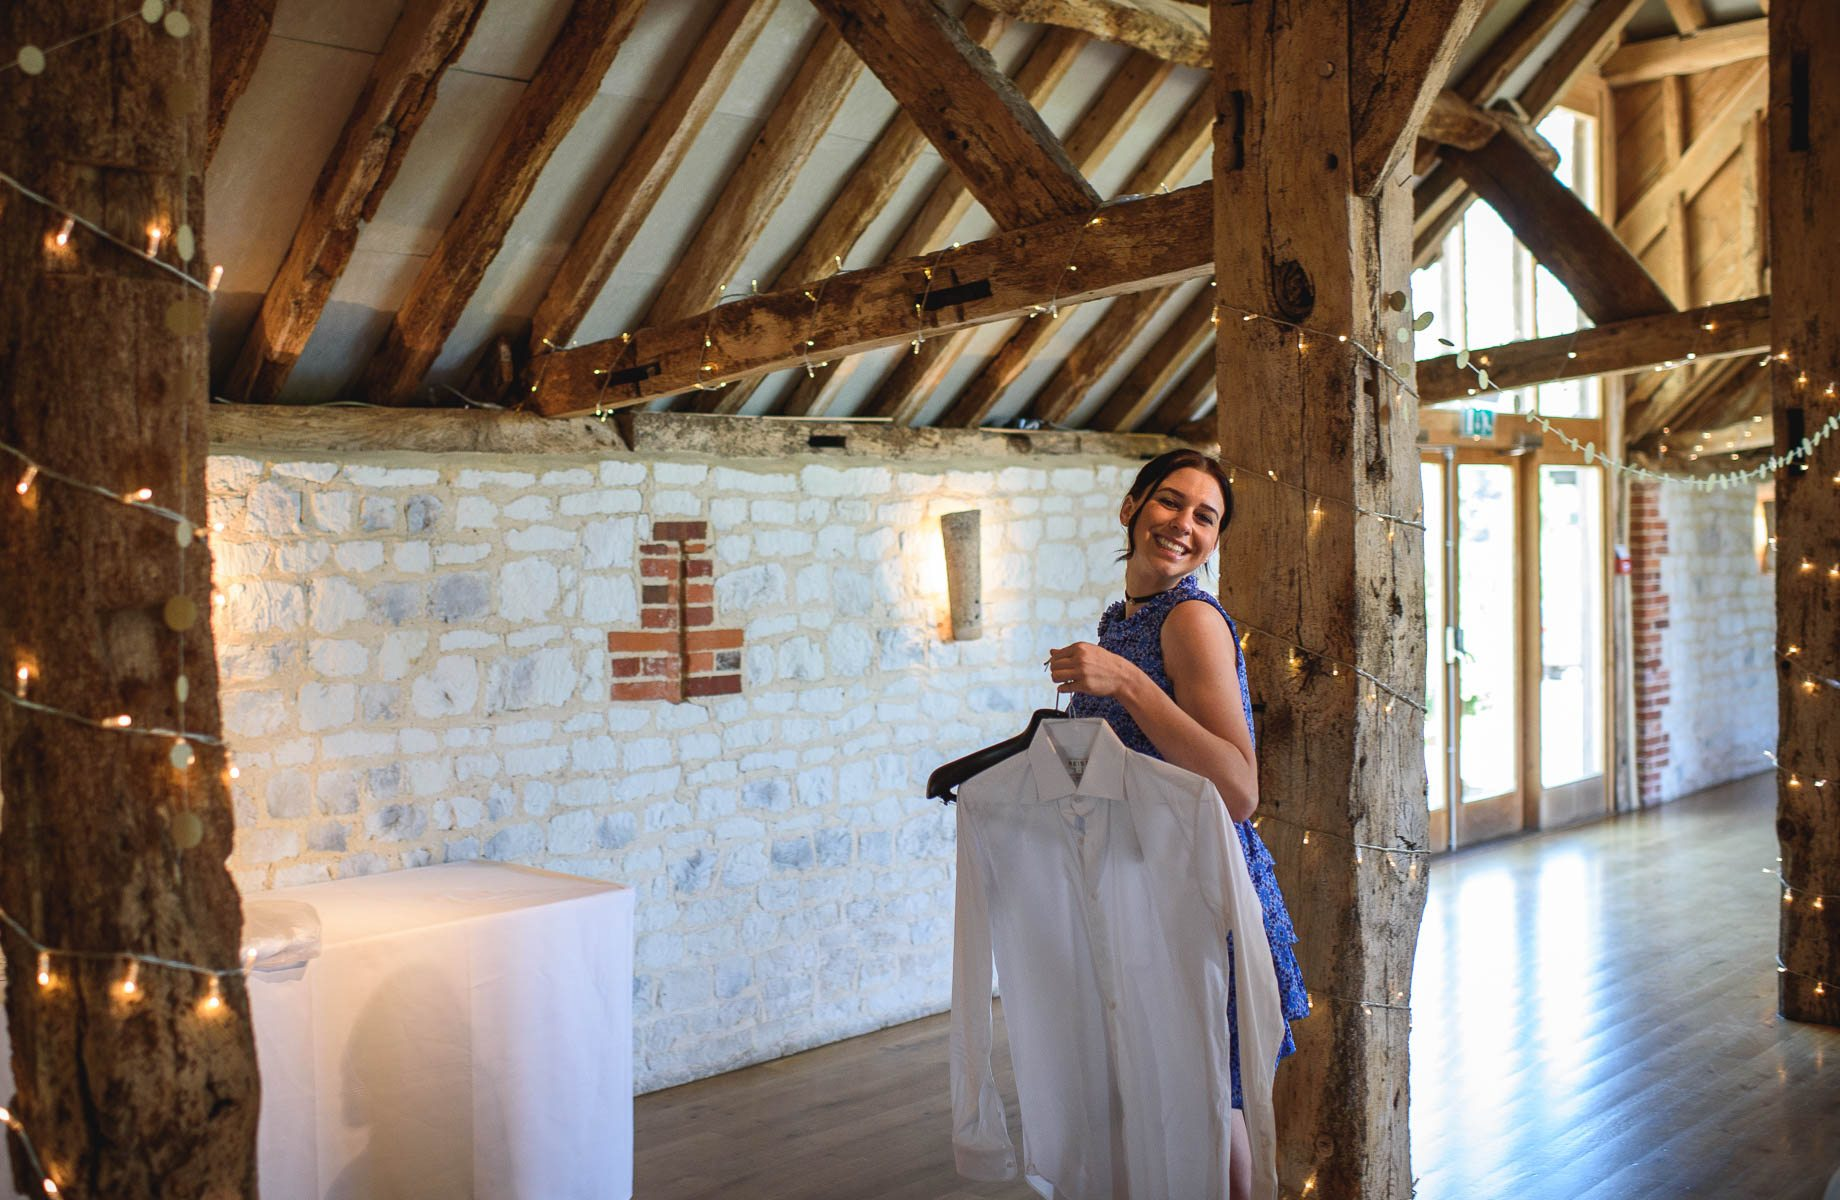 Bury Court Barn wedding photography by Guy Collier - Jo and Jamie (20 of 160)